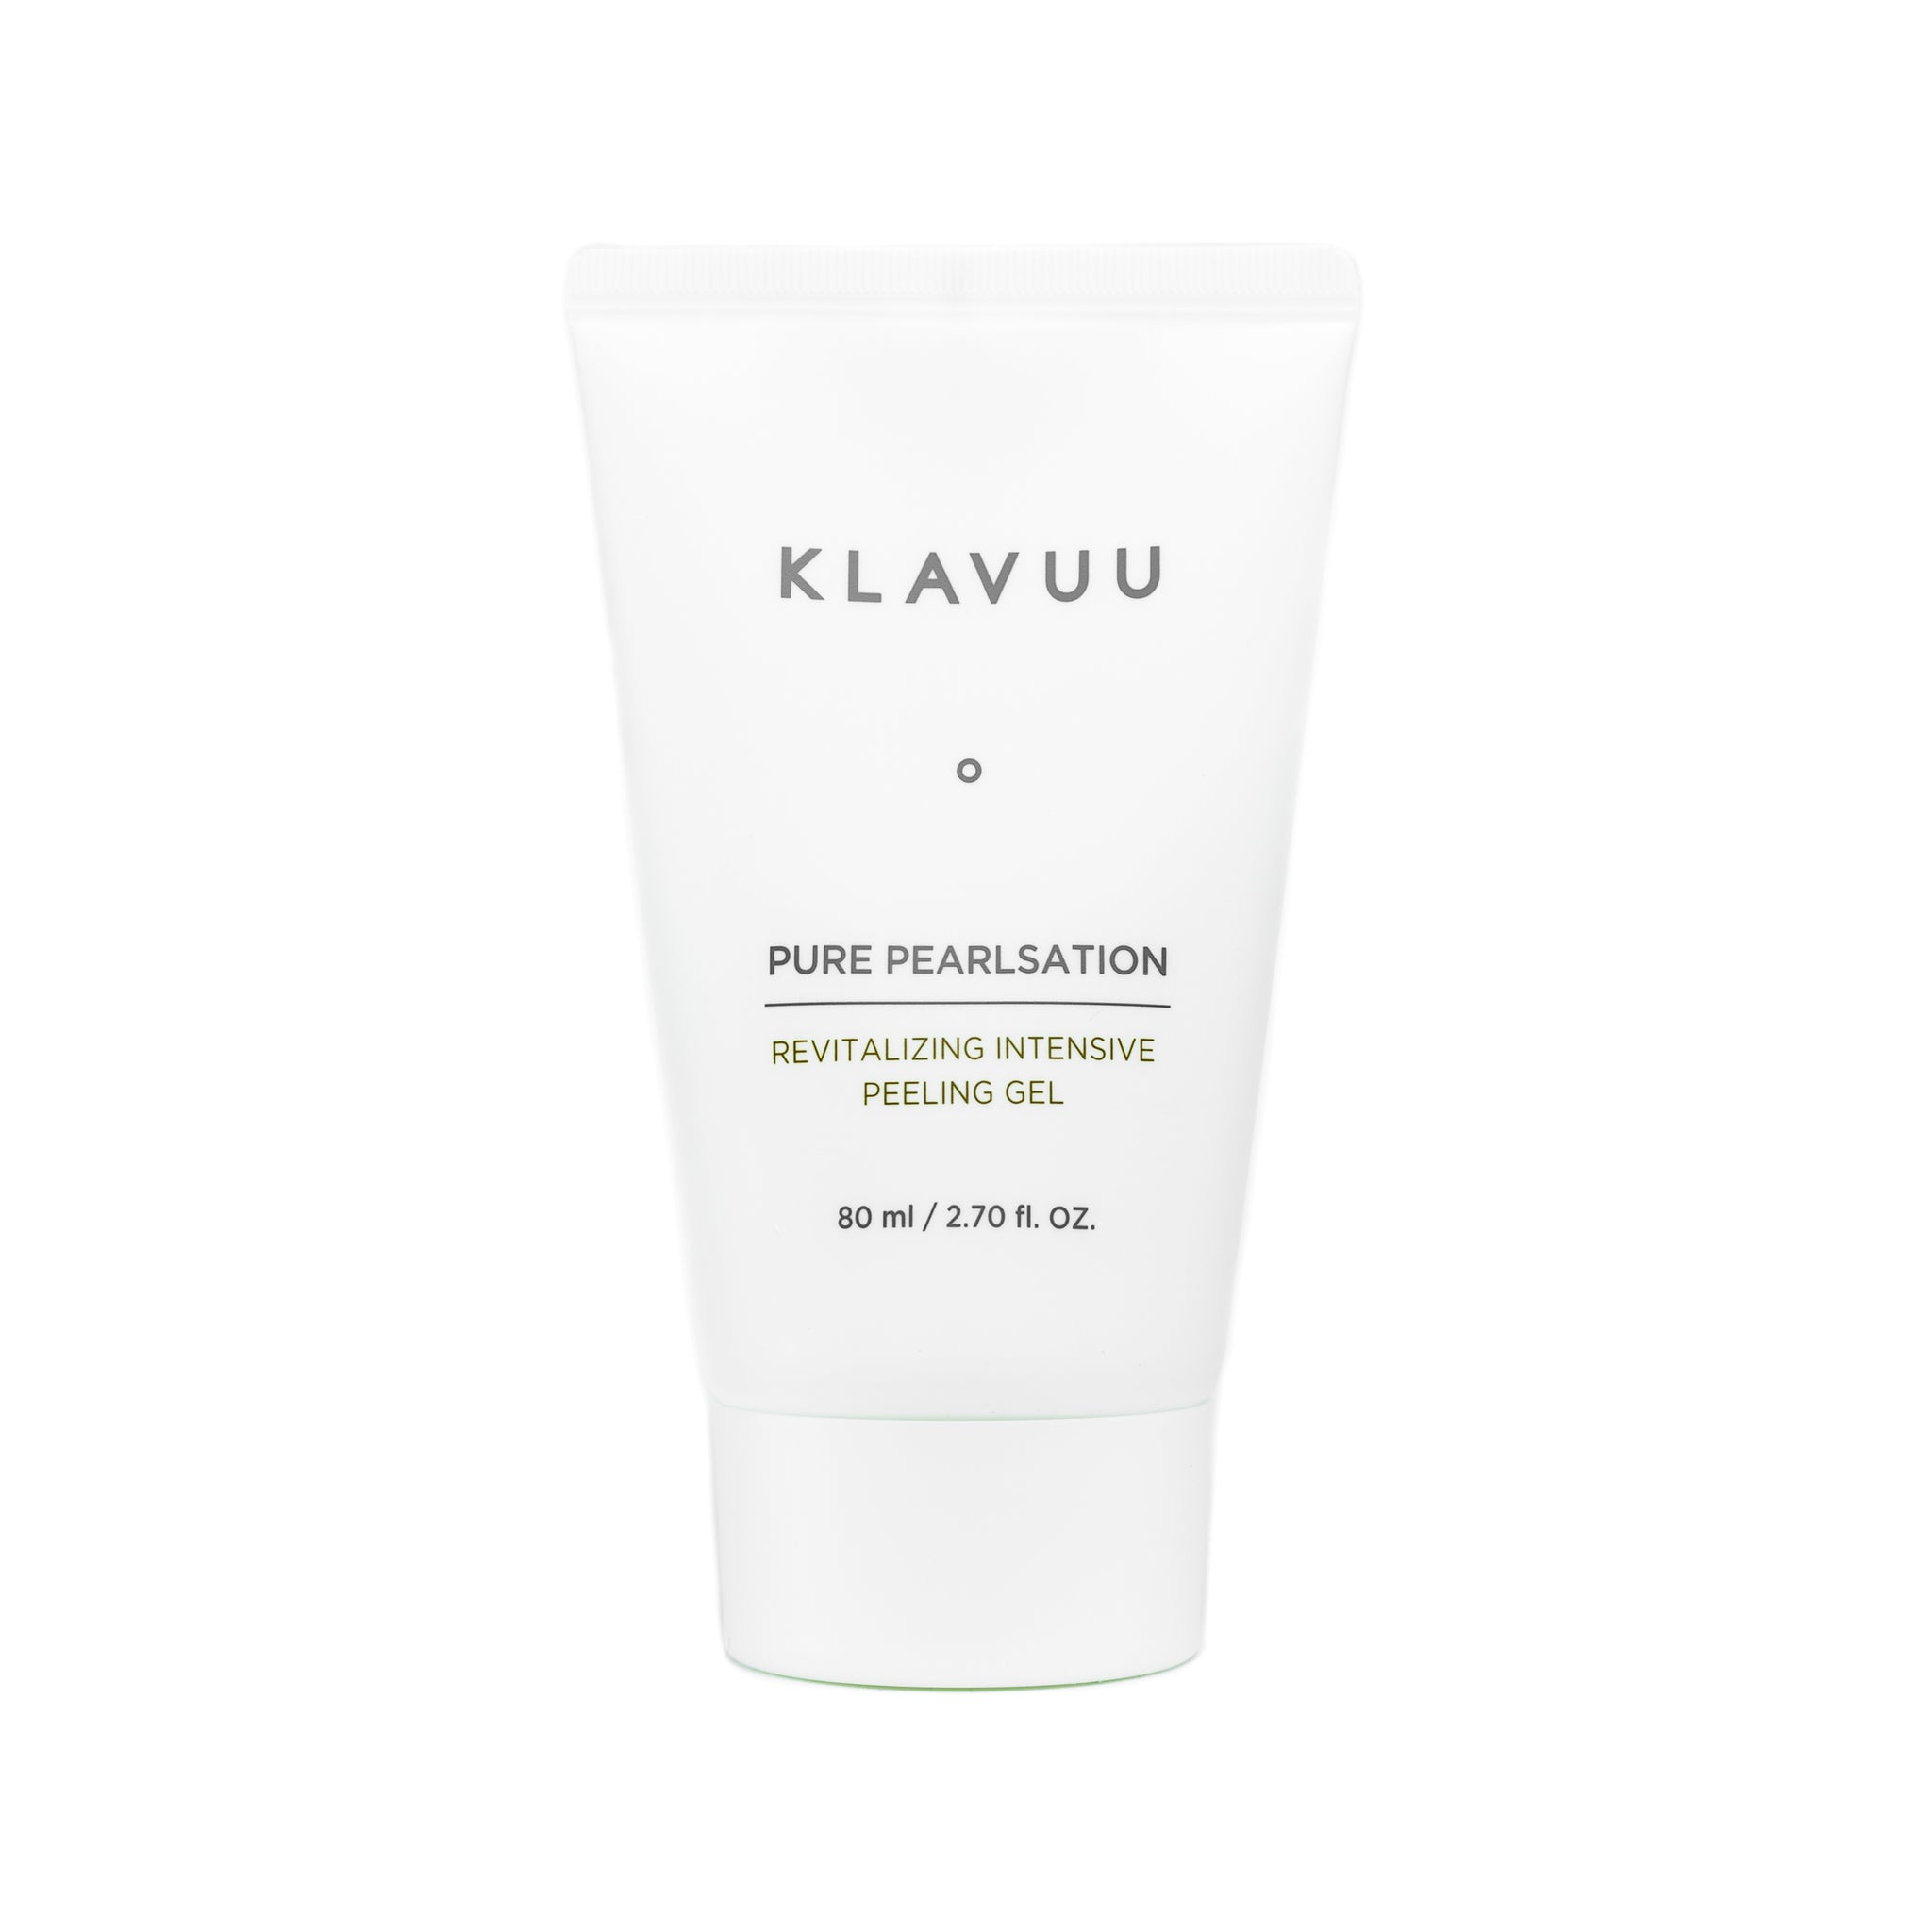 KLAVUU Pure Pearlsation Revitalizing Intensive Peeling Gel Front